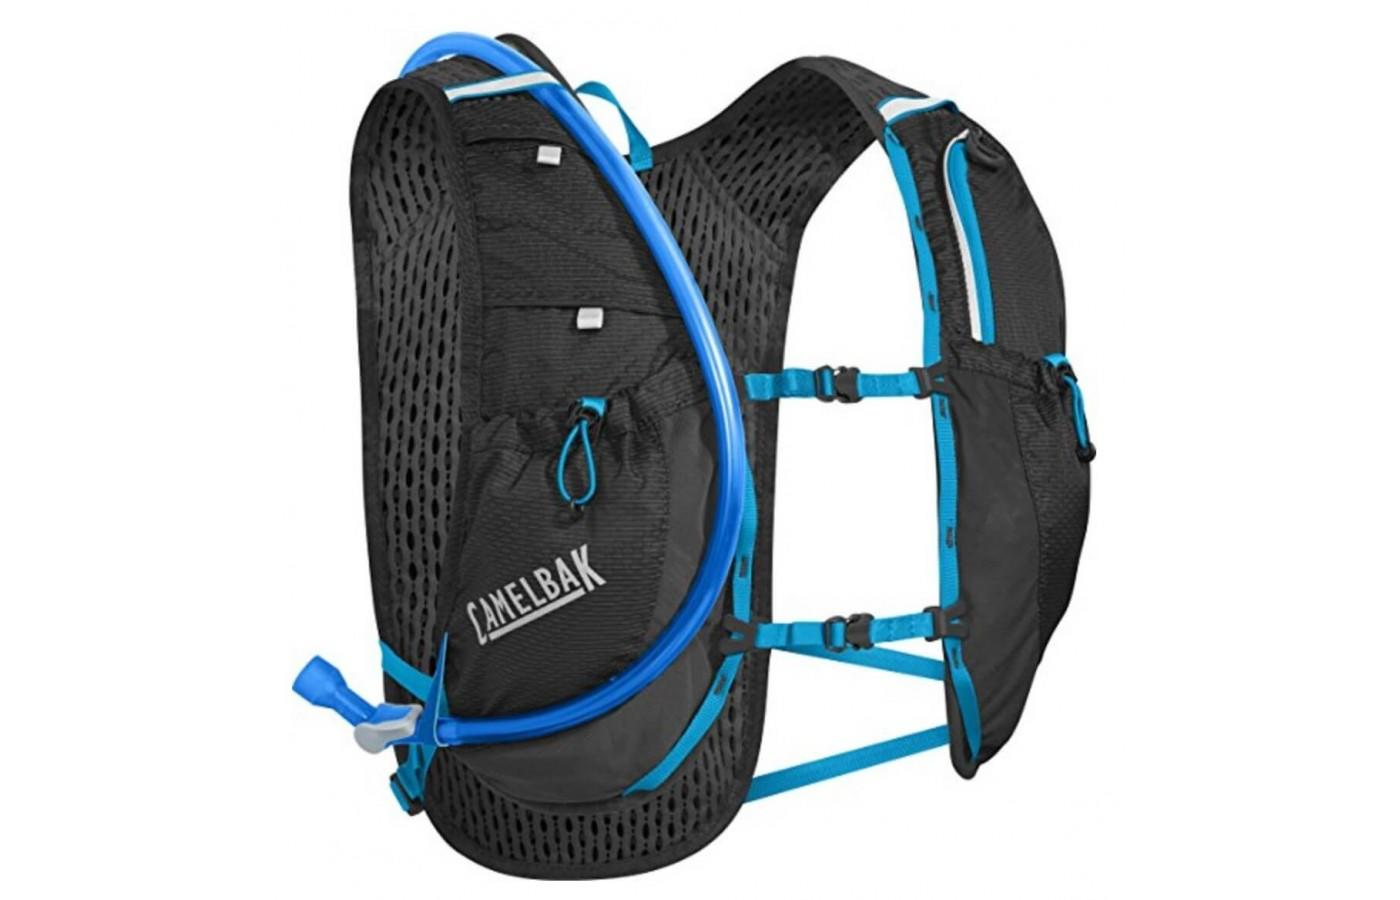 Circuit Vest is mainly for hydration and has limited storage